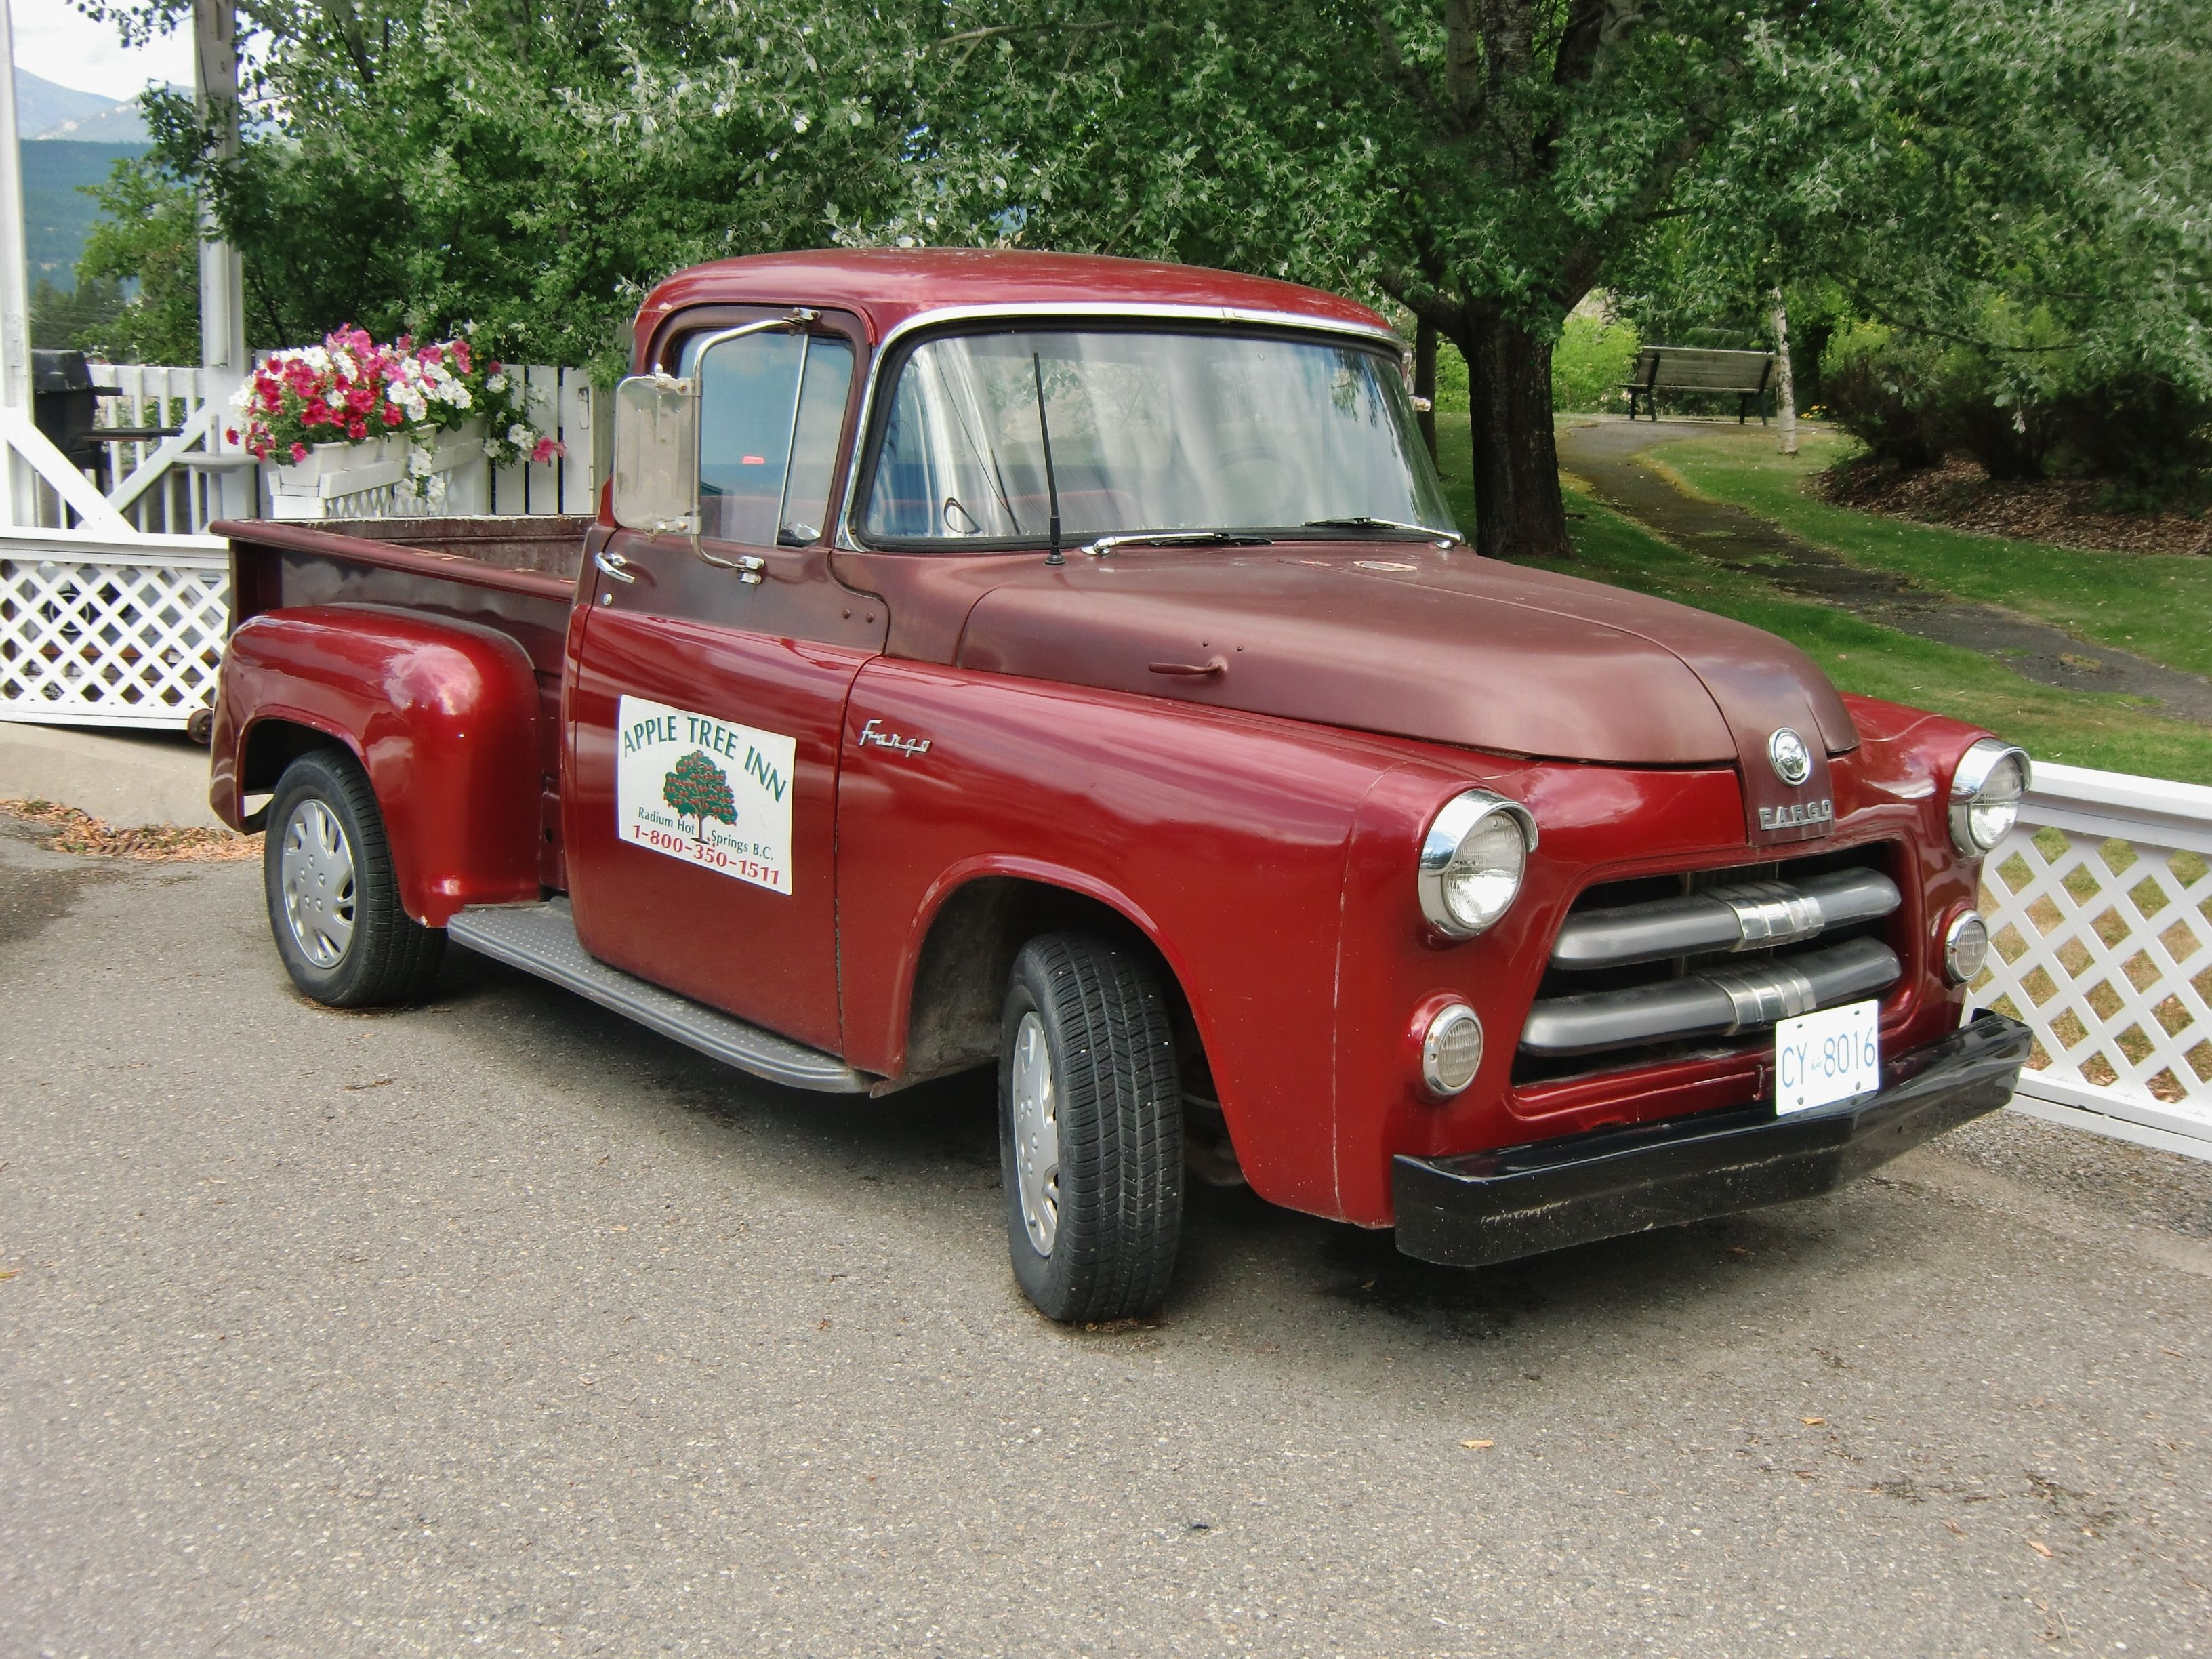 1955 Fargo (Canadian badging of Dodge) truck. Photography